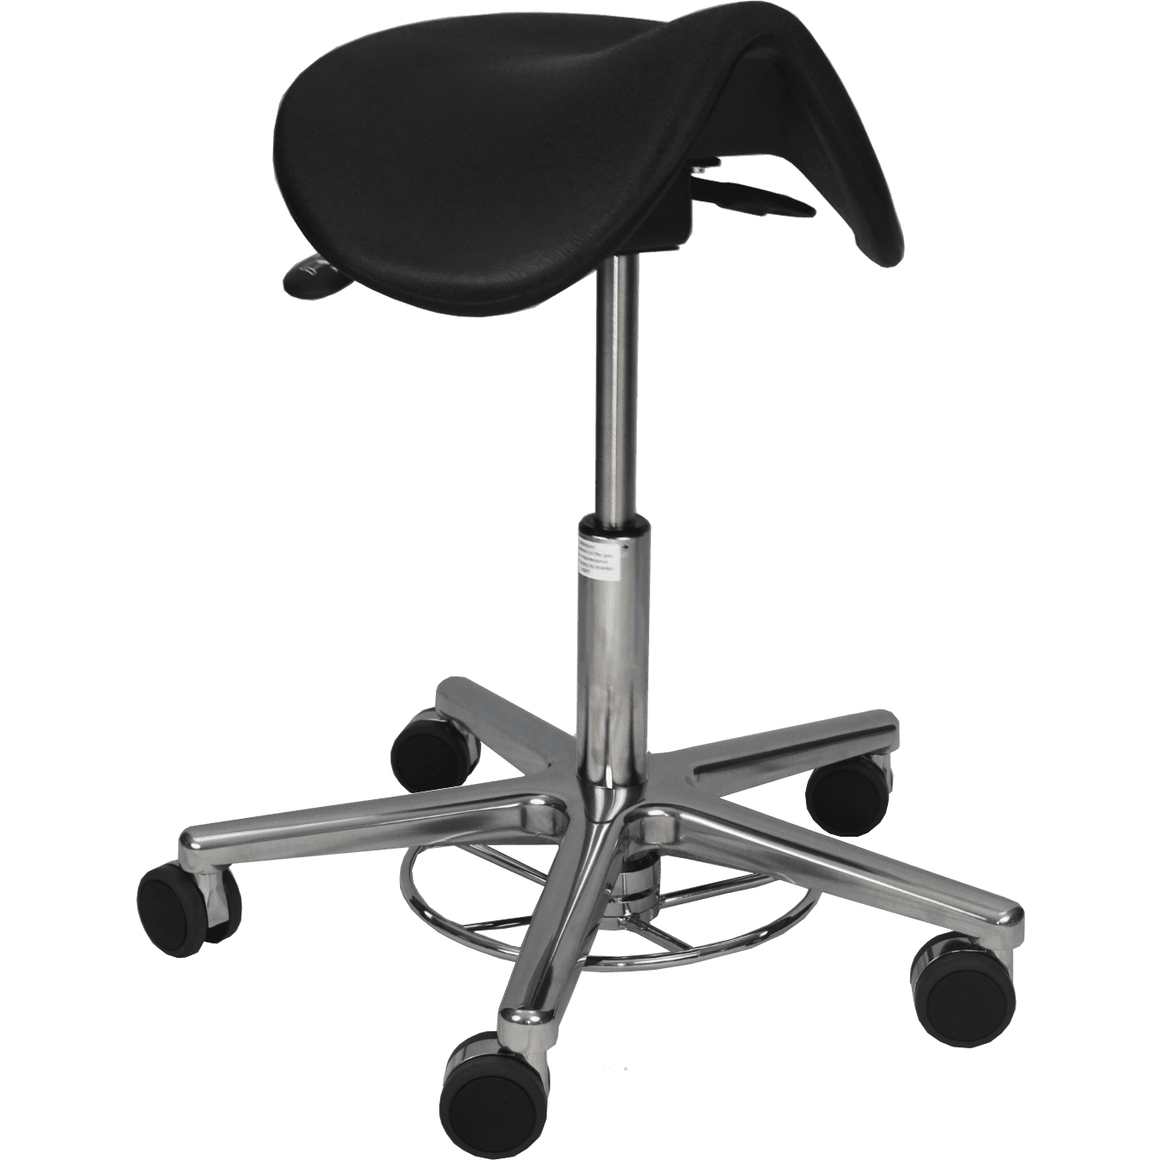 Milagon Tasq Saddle Stool, WS3520KL